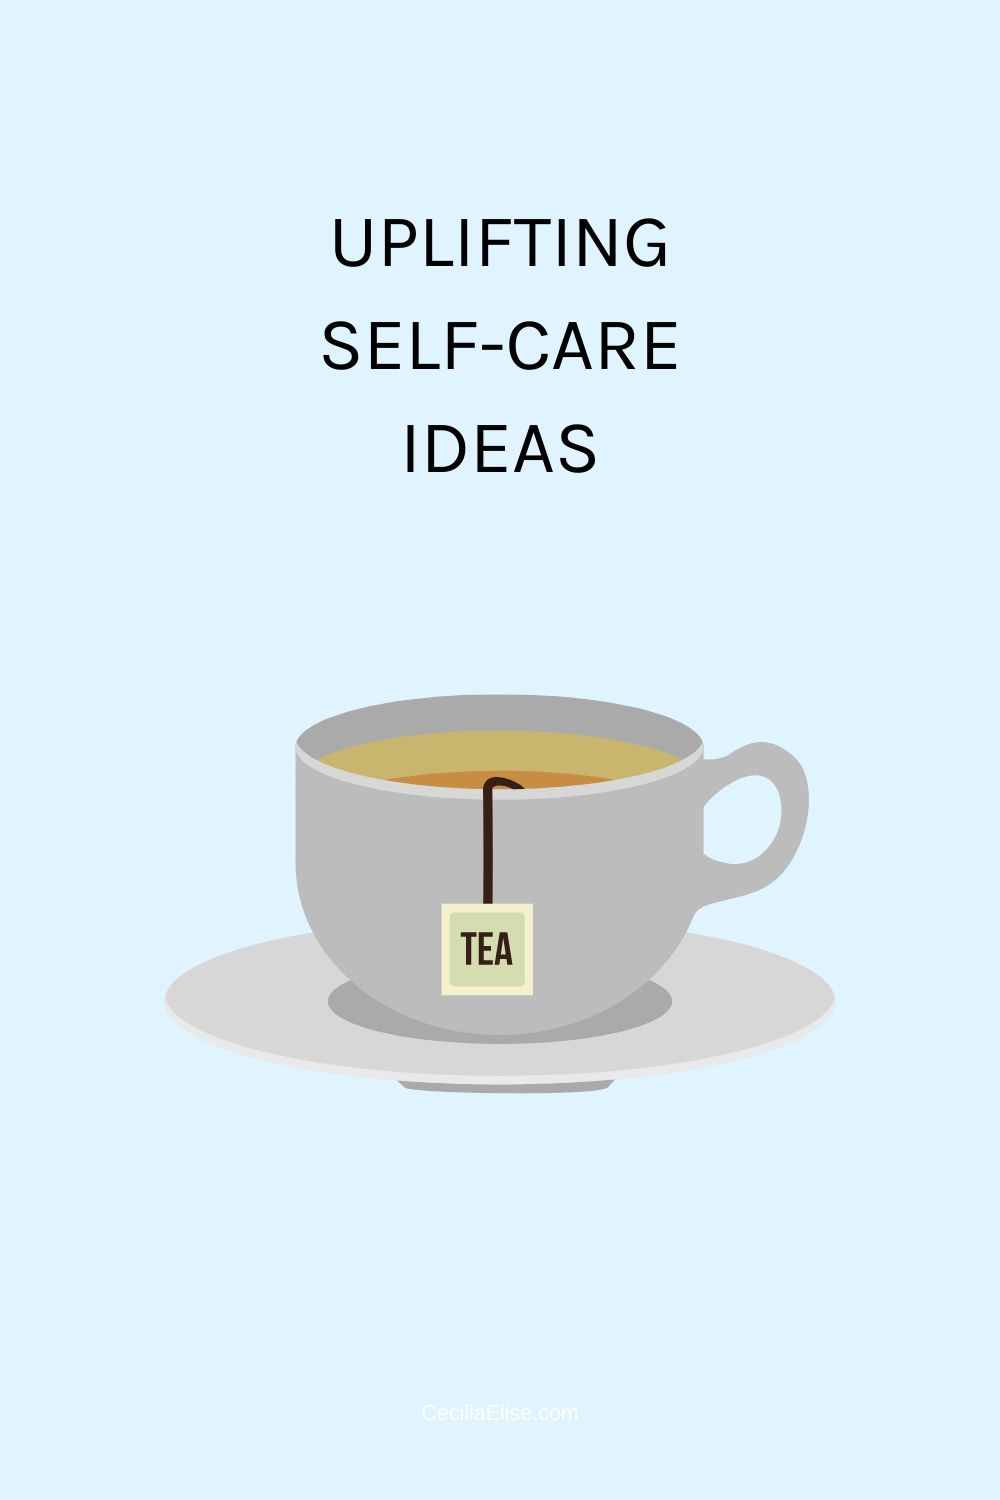 Uplifting self-care ideas